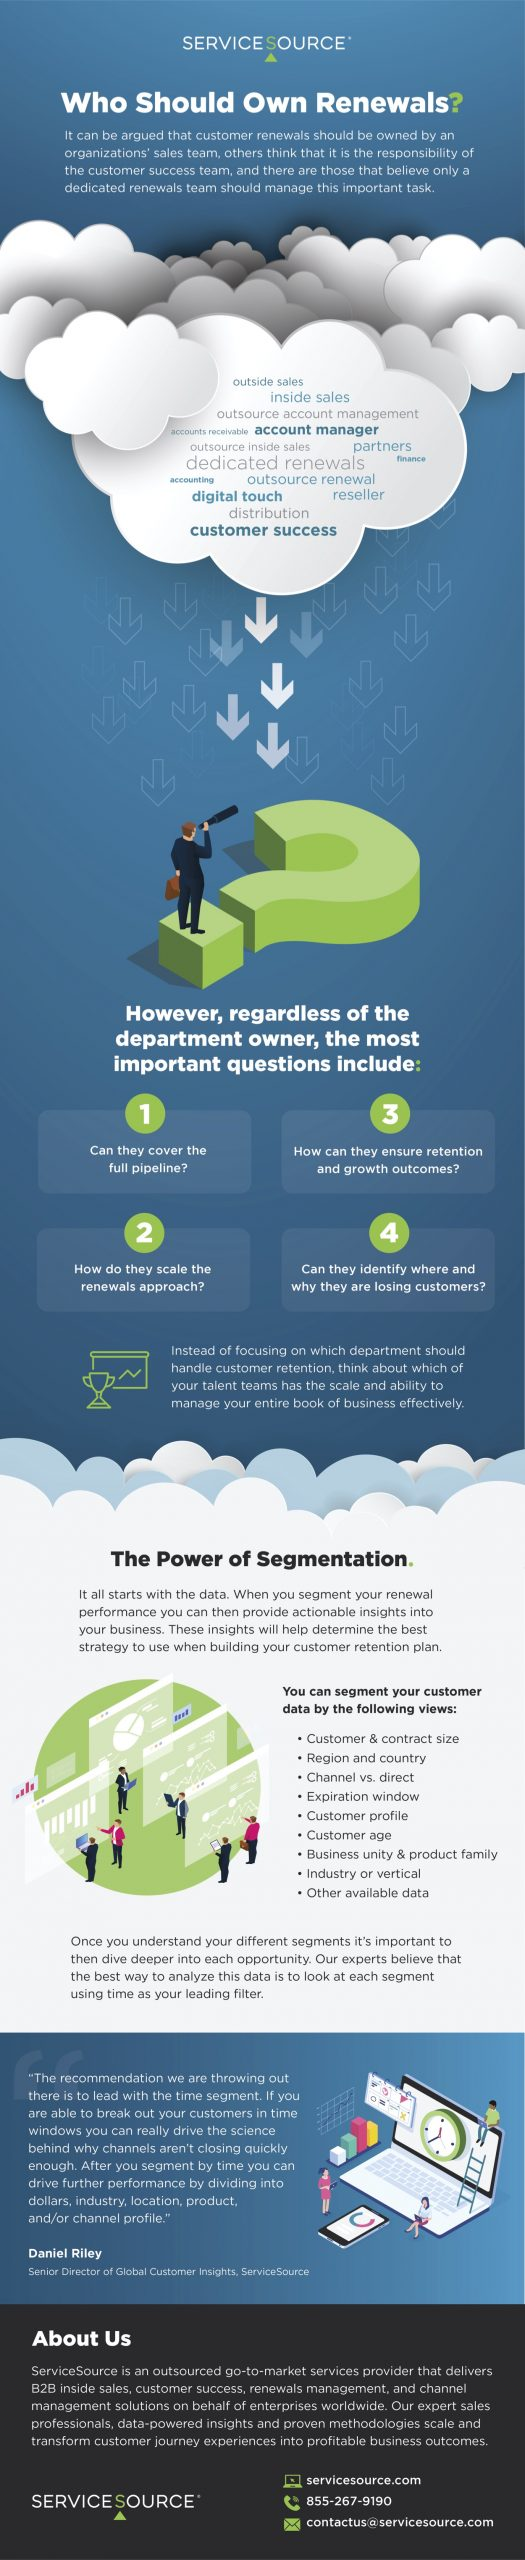 Who Should Own Renewals Infographic